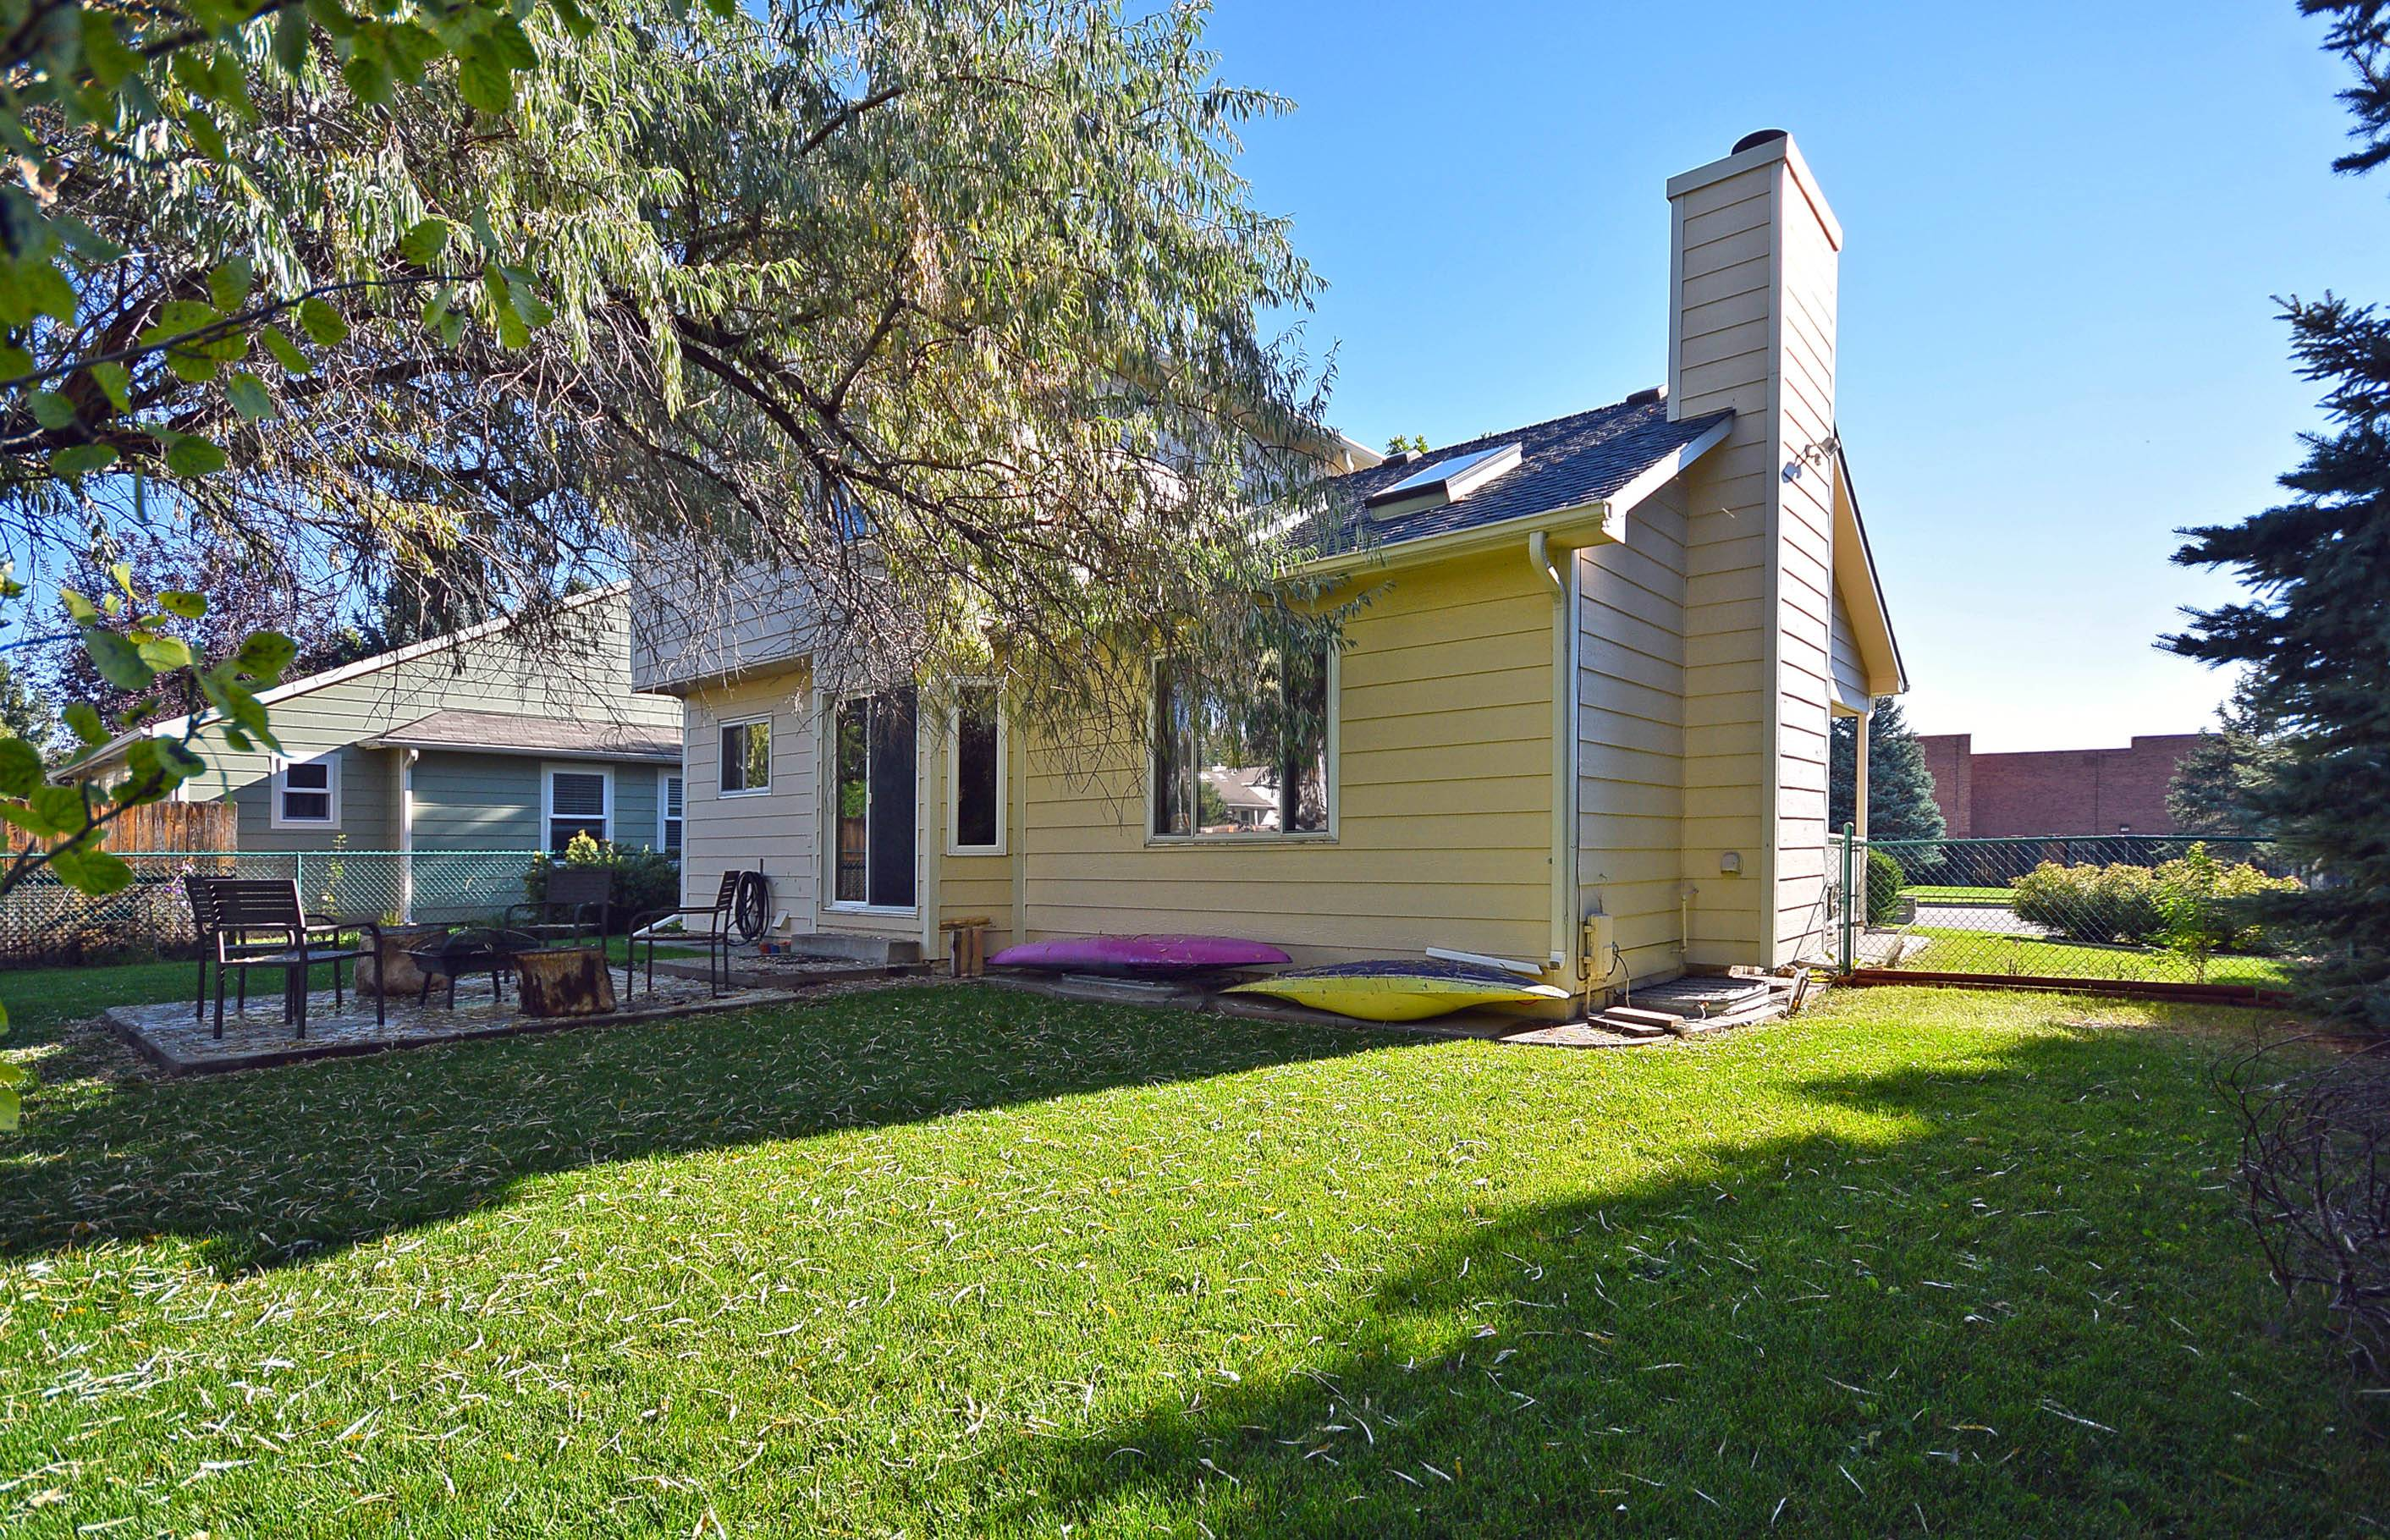 Home Sale Fort Collins Real Estate Angie